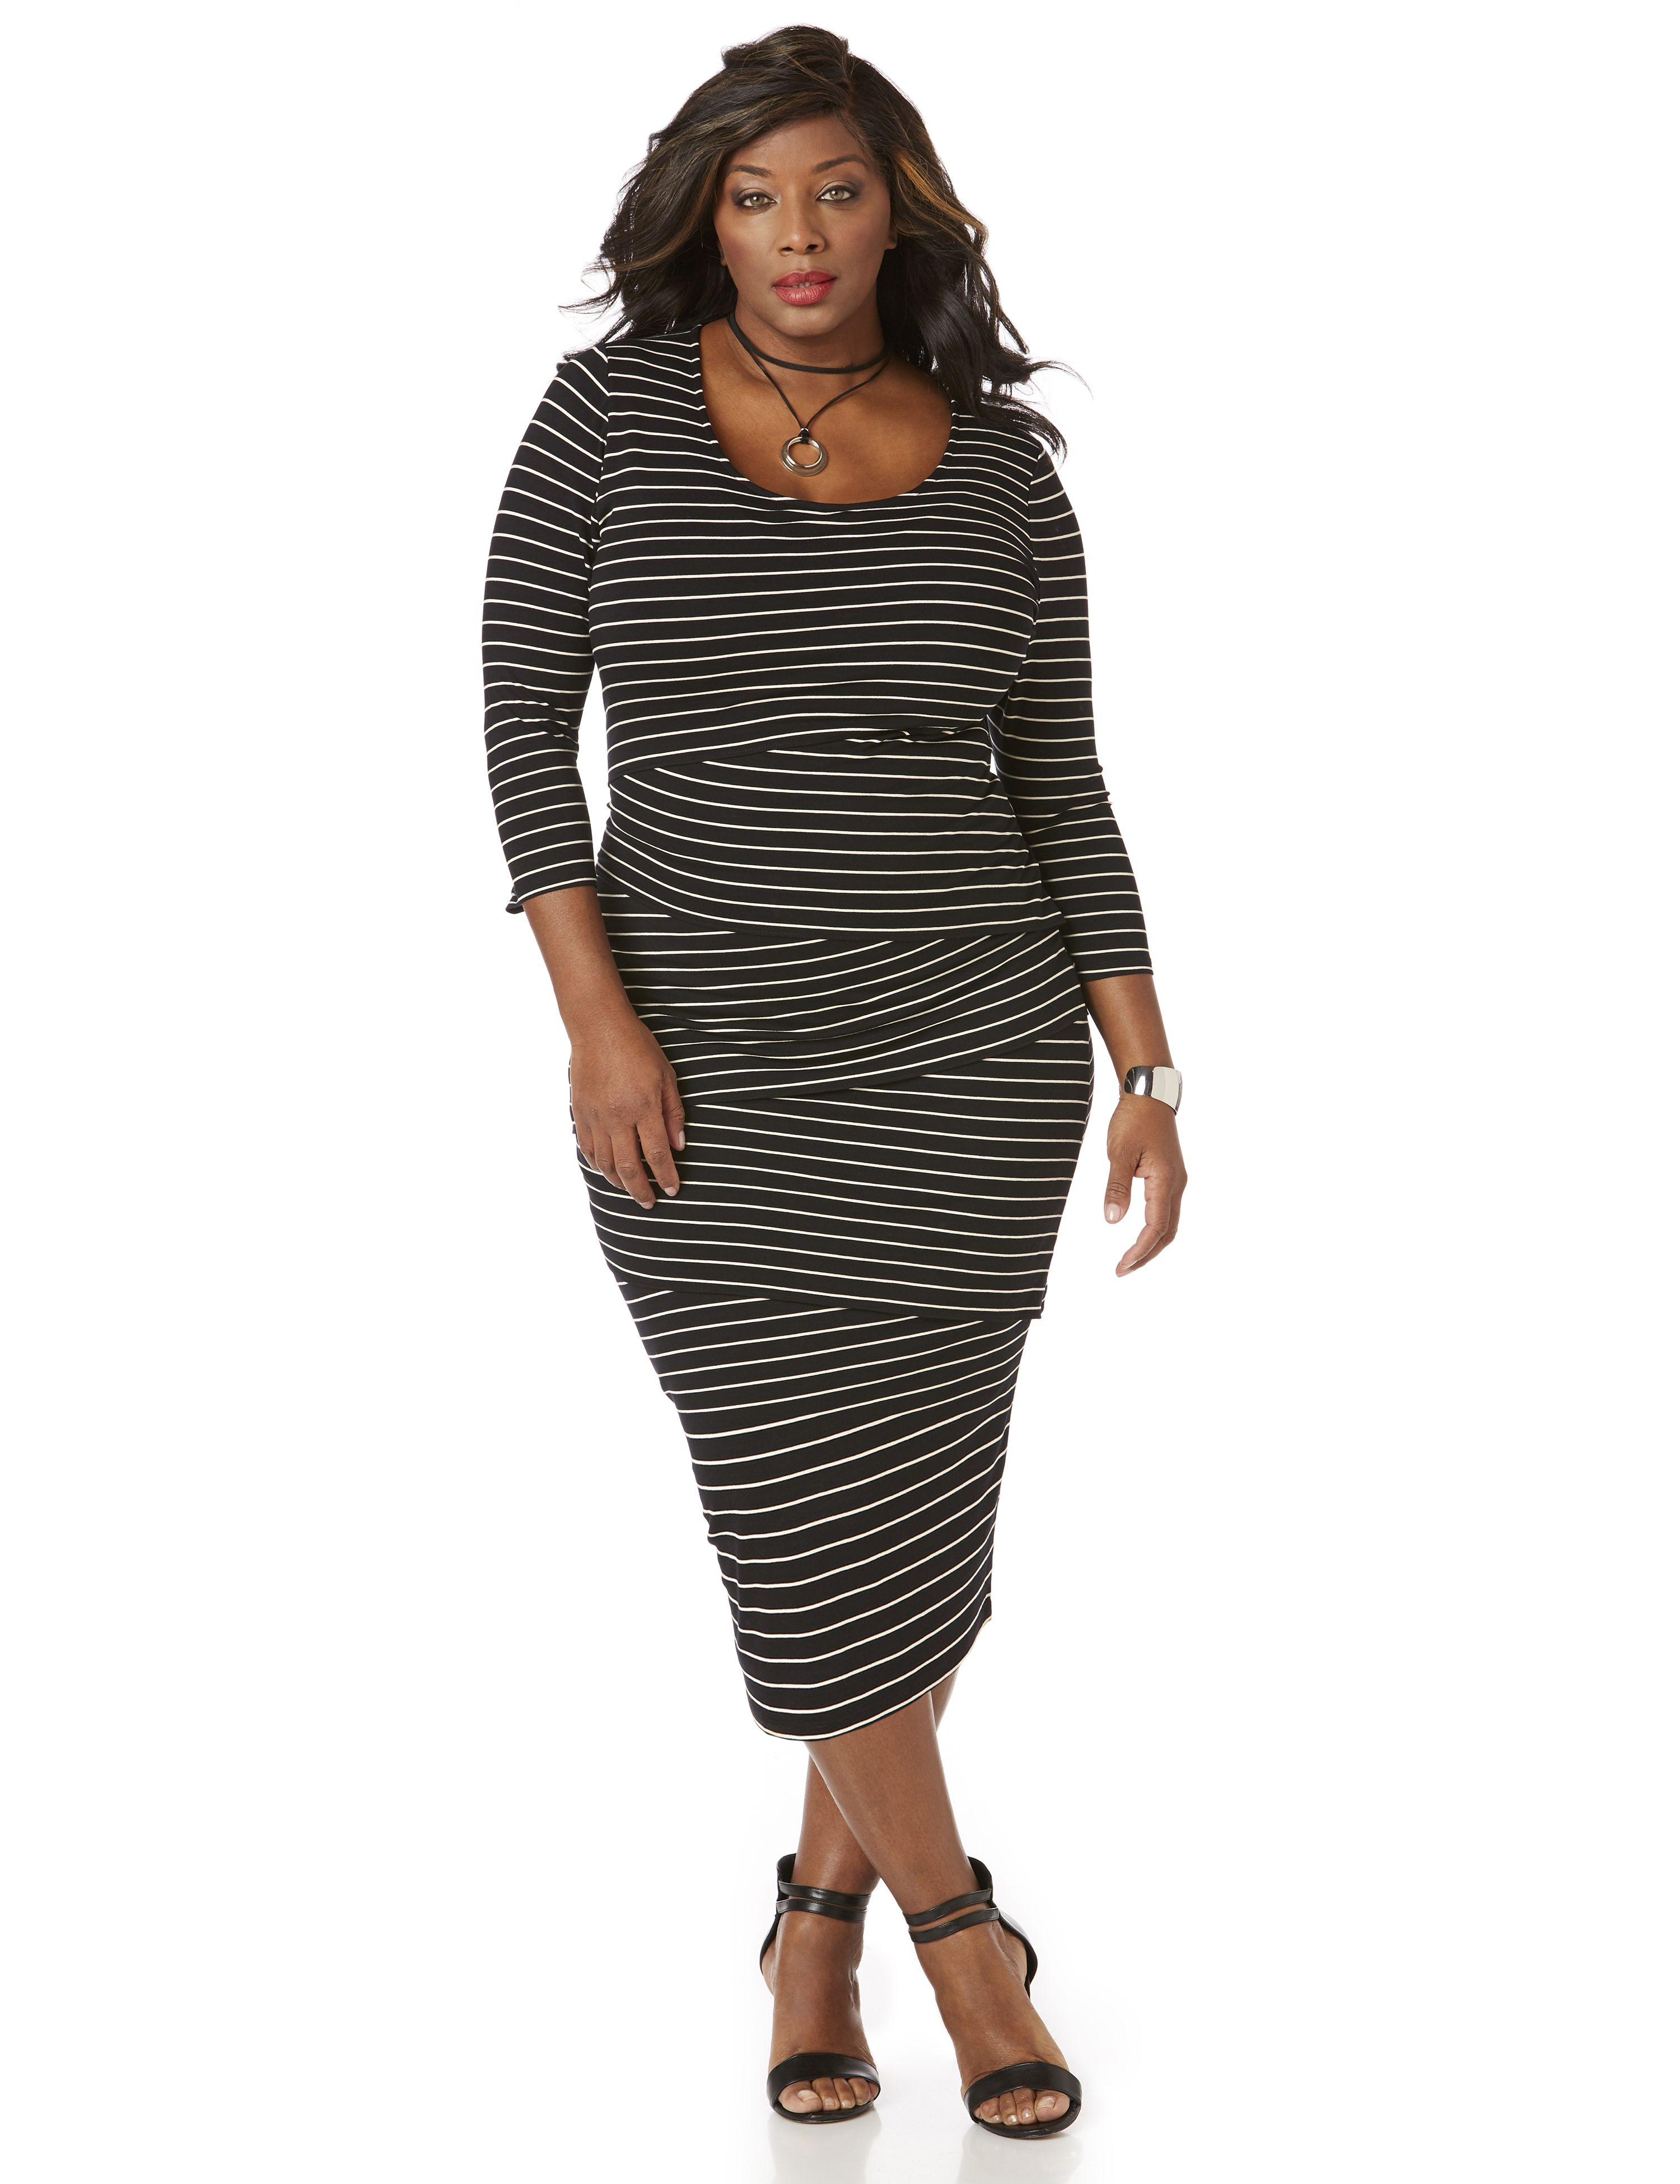 Plus Size Fashion Catherines Sexy Curvy Collection Curvydivas